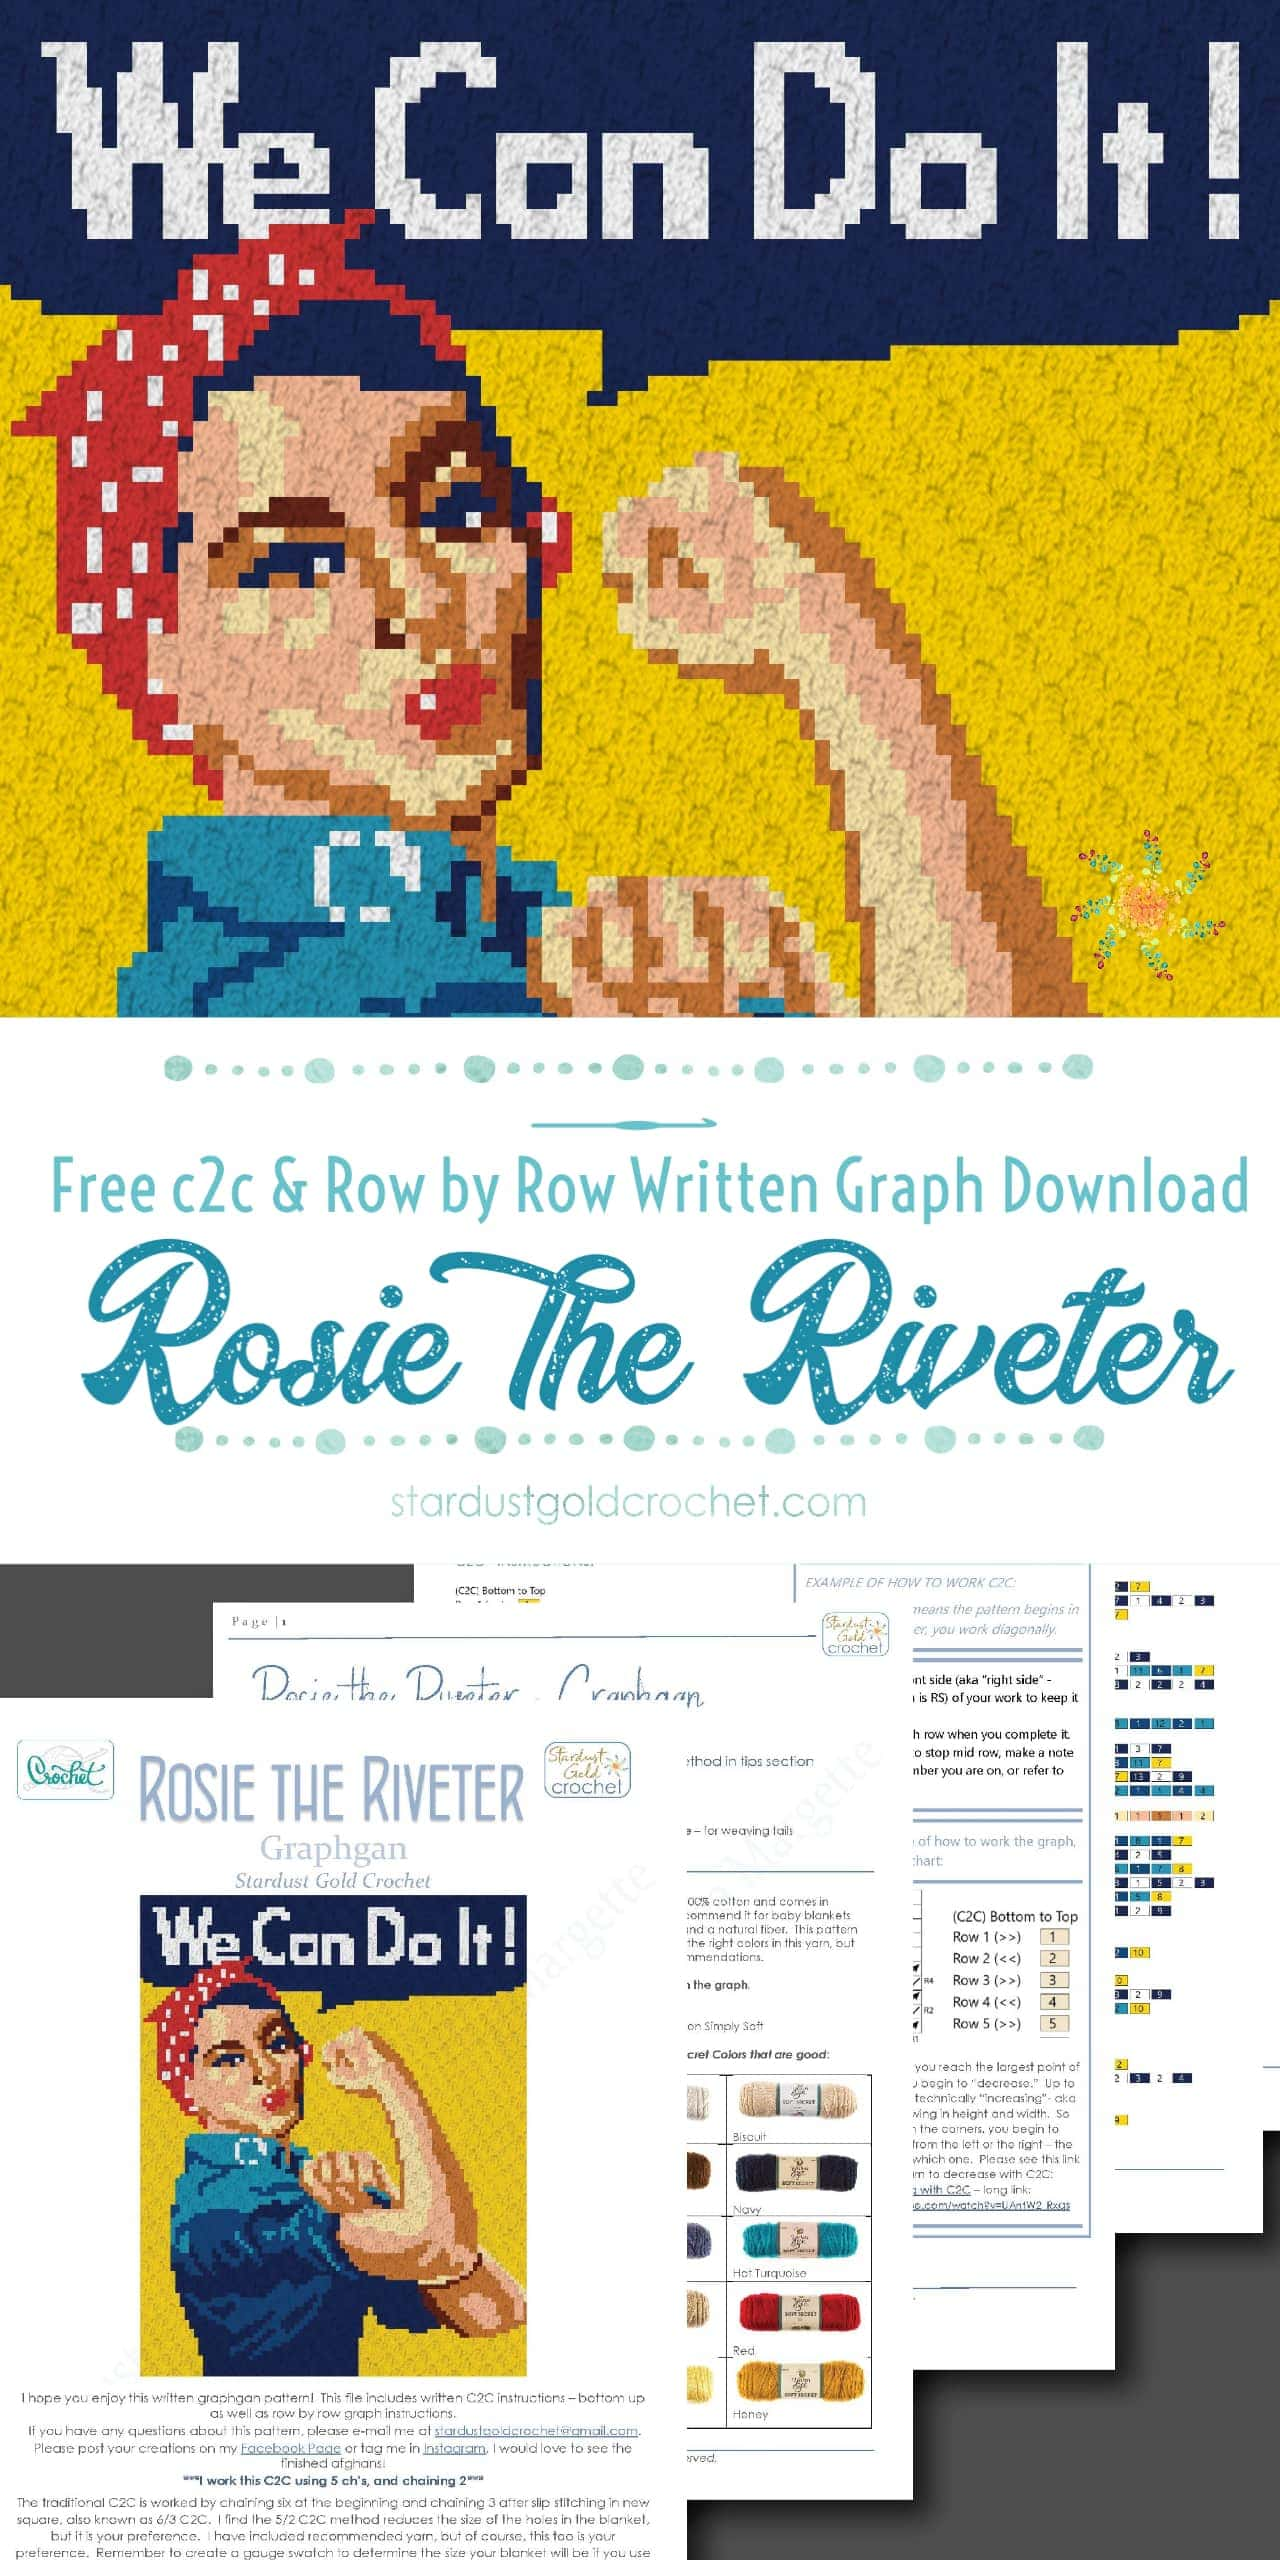 Rosie the Riveter Pin Free Graph Download